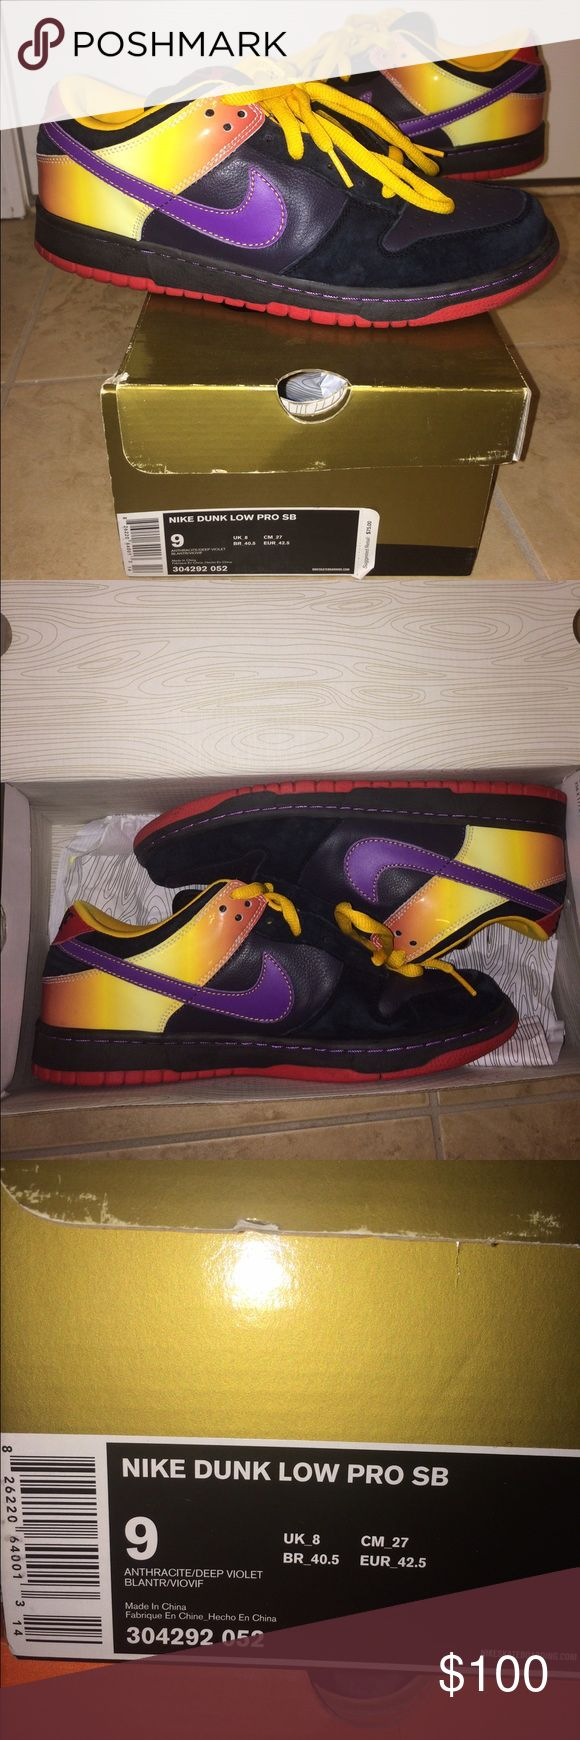 Nike Dunk Low Pro SB Guns n Roses Edition, minimal use, great condition, clean Nike Shoes Sneakers